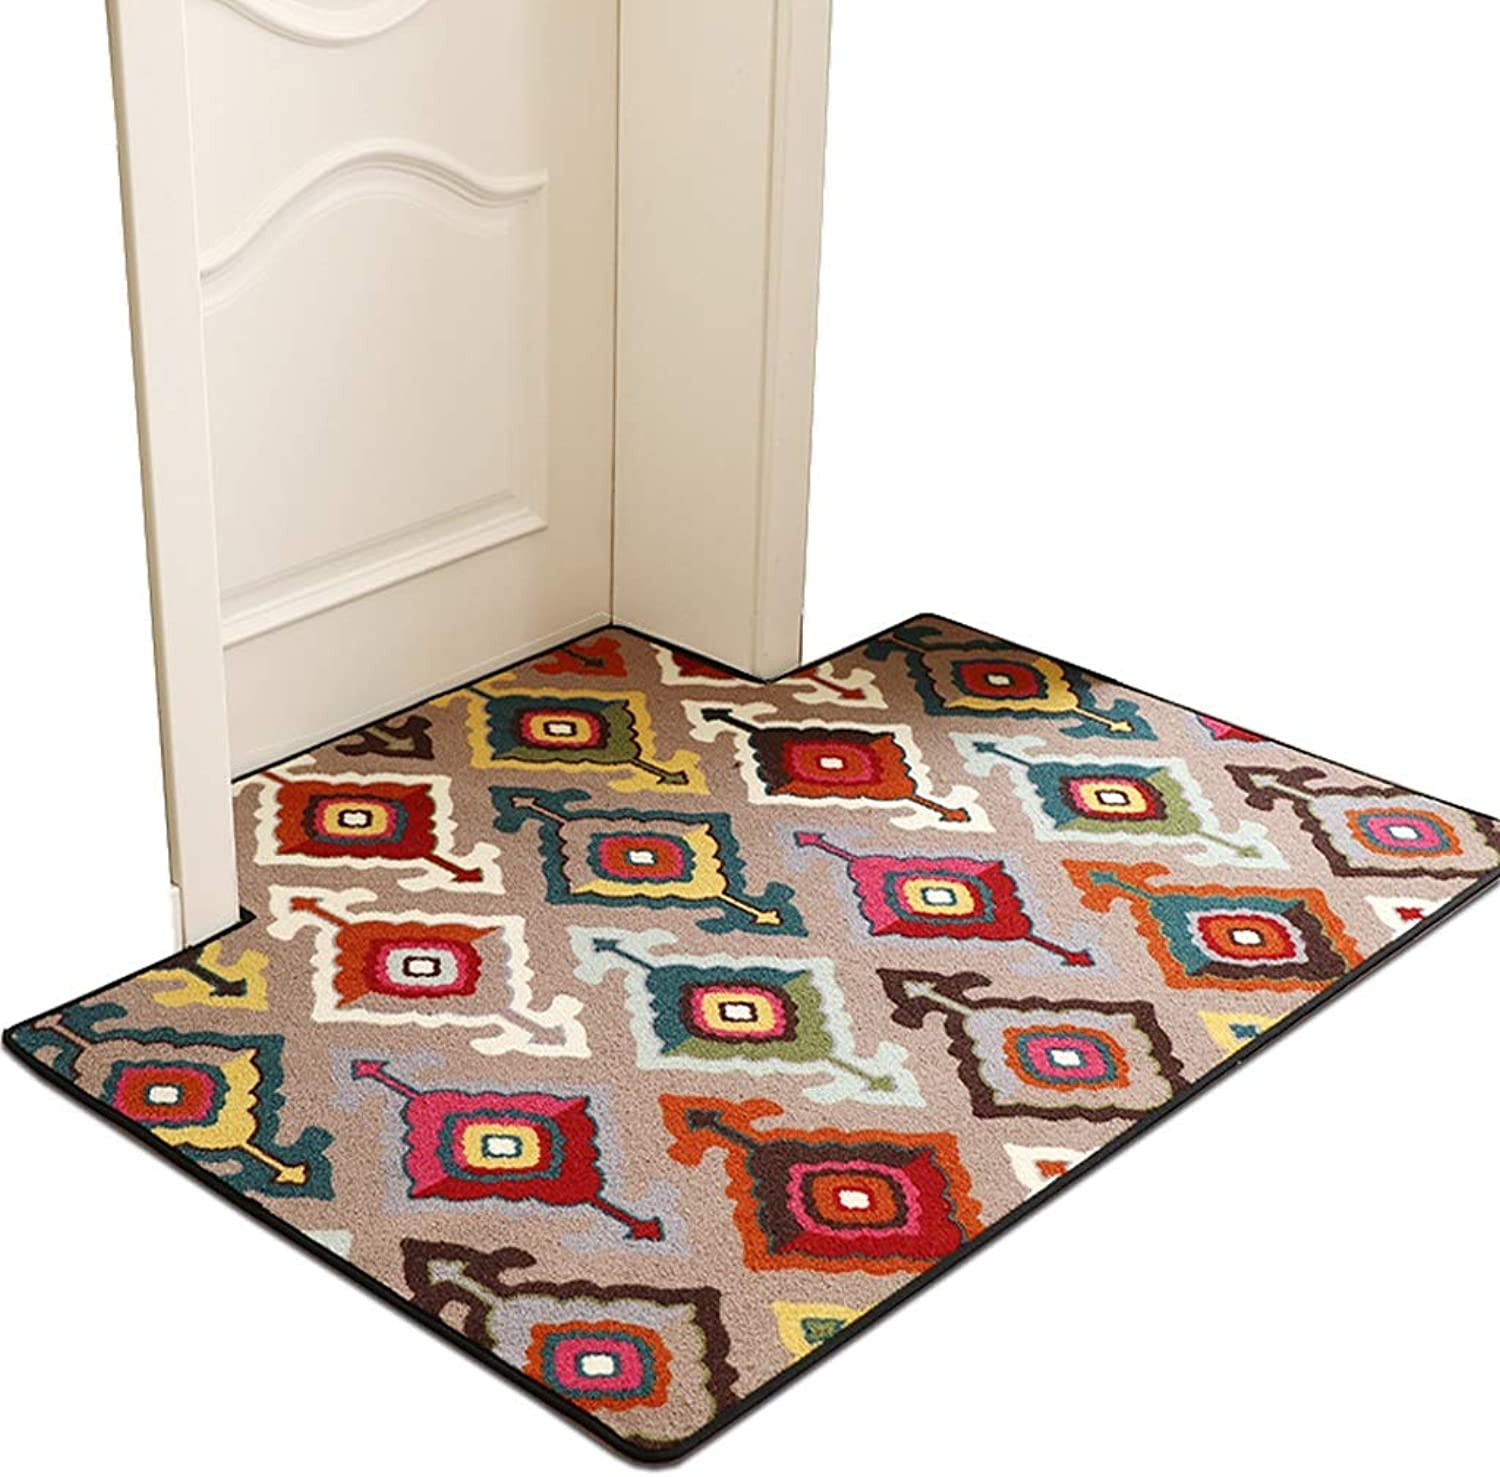 SHATONGCarpet Floor Mat Door Mat Door American Bedroom Living Room Mat Home Carpet Home Mat Door Entrance Door Mat (color   Multicolord, Size   50X80cm)